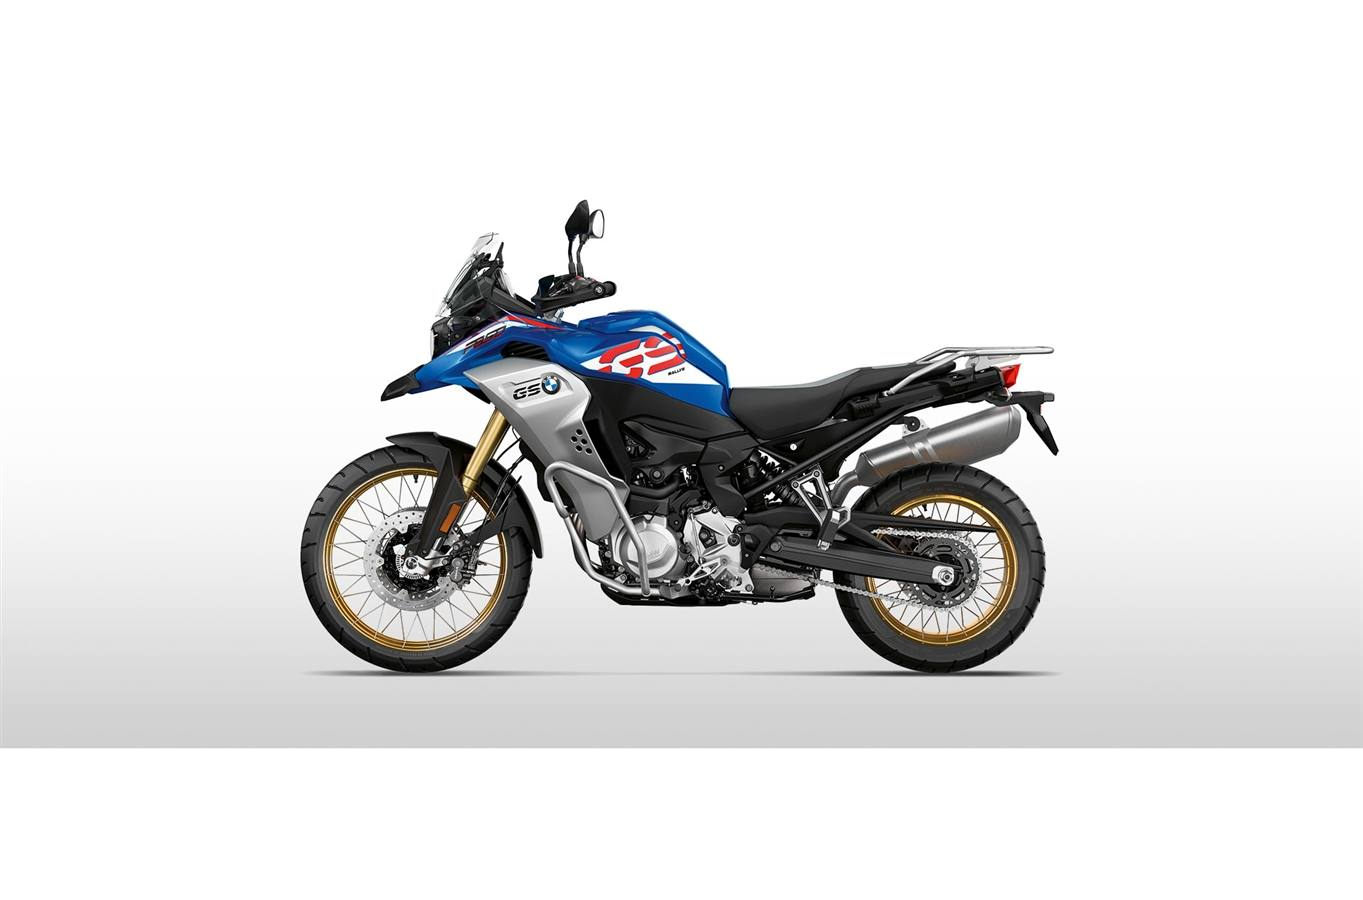 2019 bmw f 850 gs adventure - low suspension